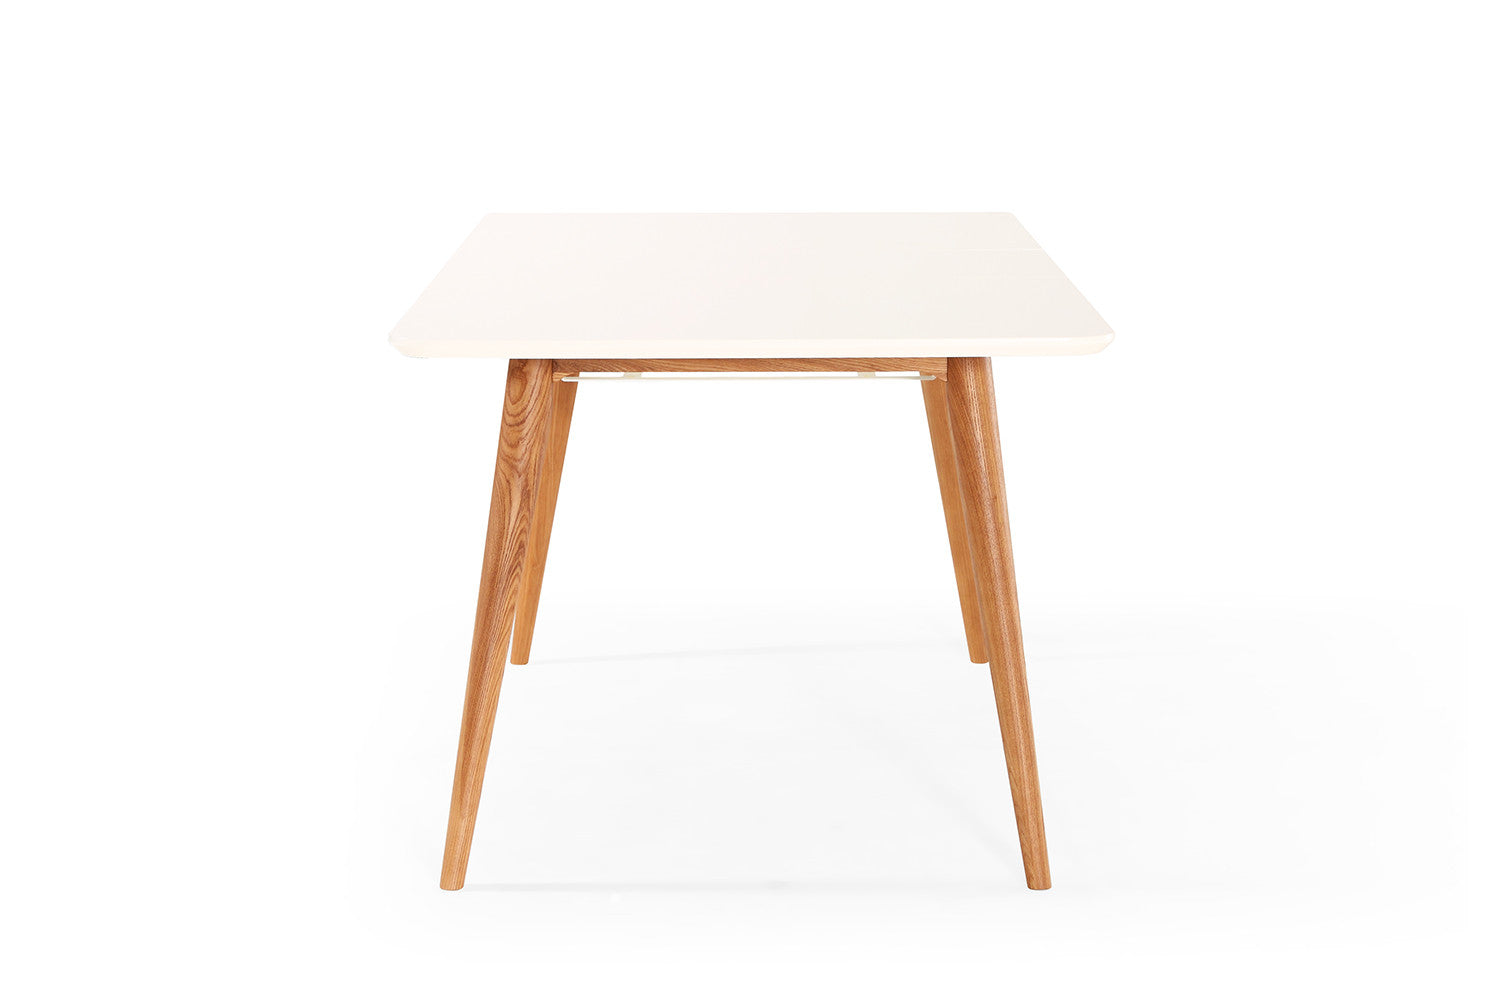 Table de salle manger extensible scandinave wyna dewarens - Table extensible scandinave ...